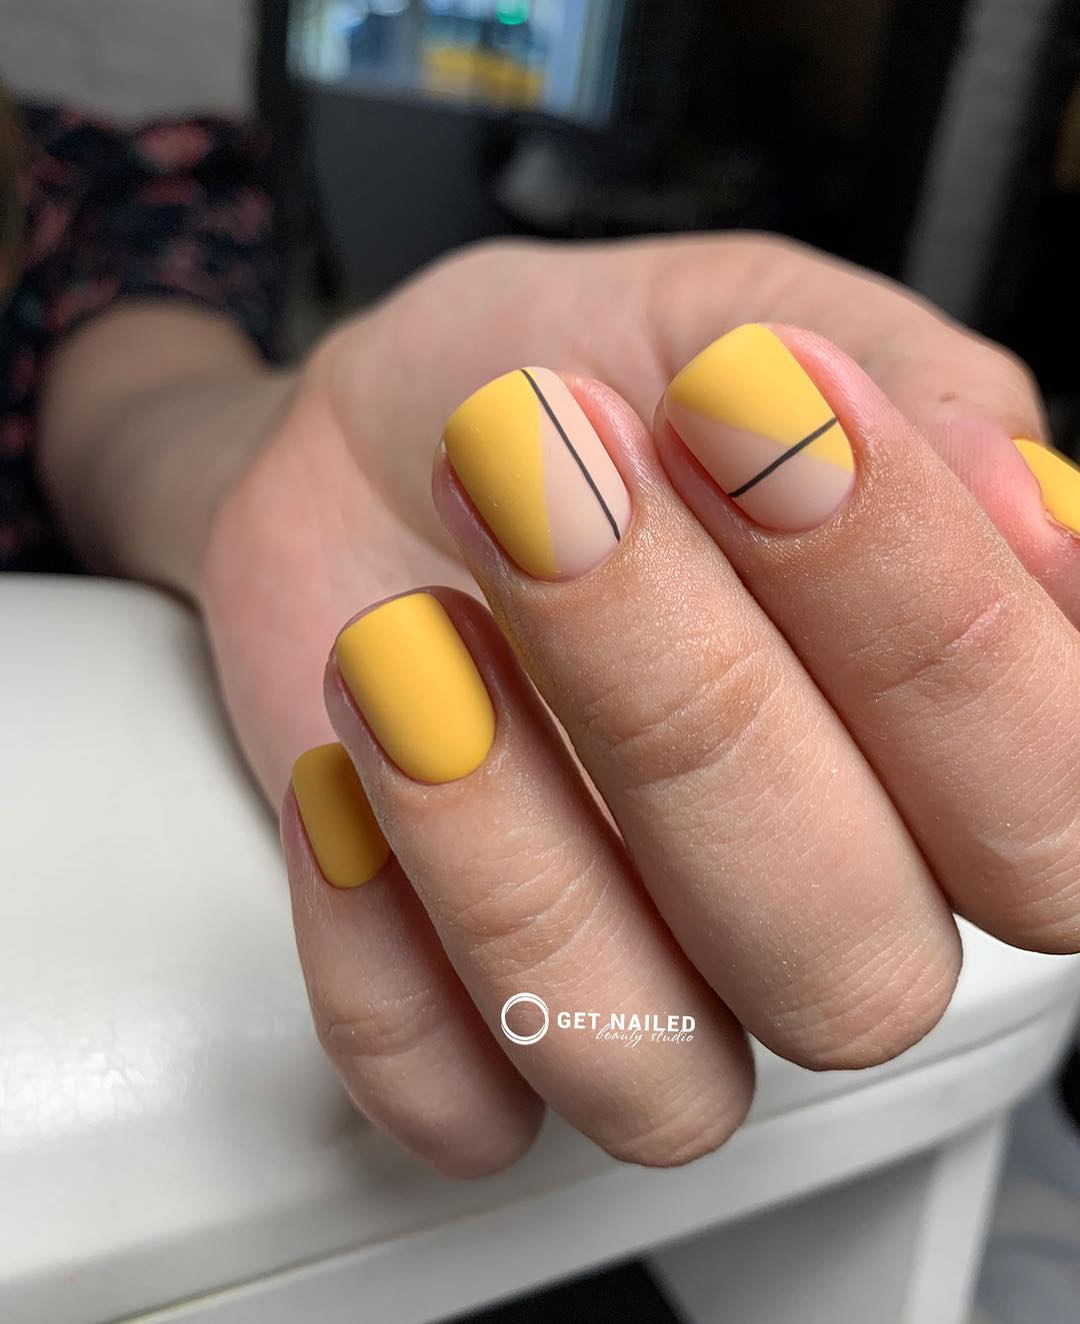 Trendy  fun Nails done by KarinaYou can book your appointment on getnailed.co, through DM, WhatsApp +34 680 576 151 or simply by leaving a comment ..luxiogel